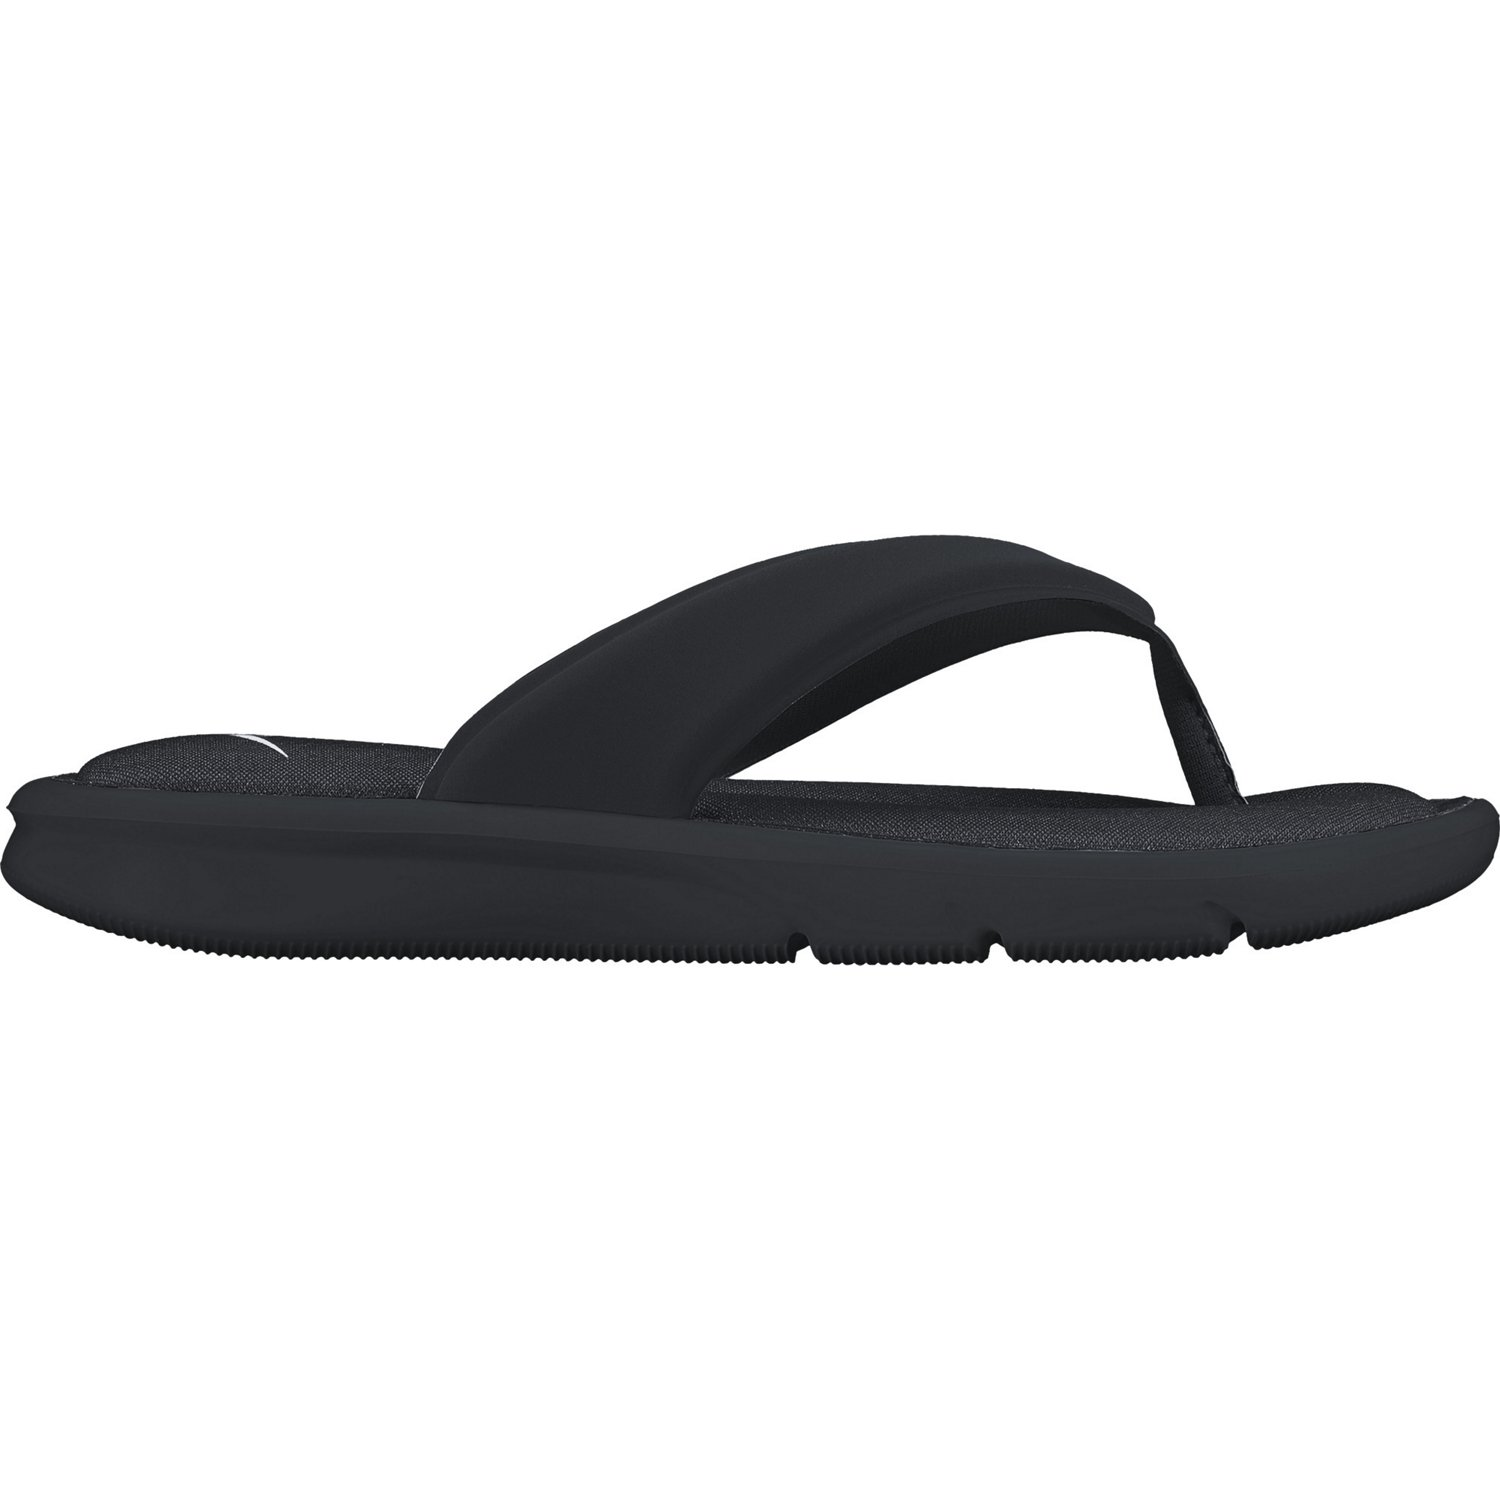 62bc2b8b7 Display product reviews for Nike Women s Ultra Comfort Thong Sandals